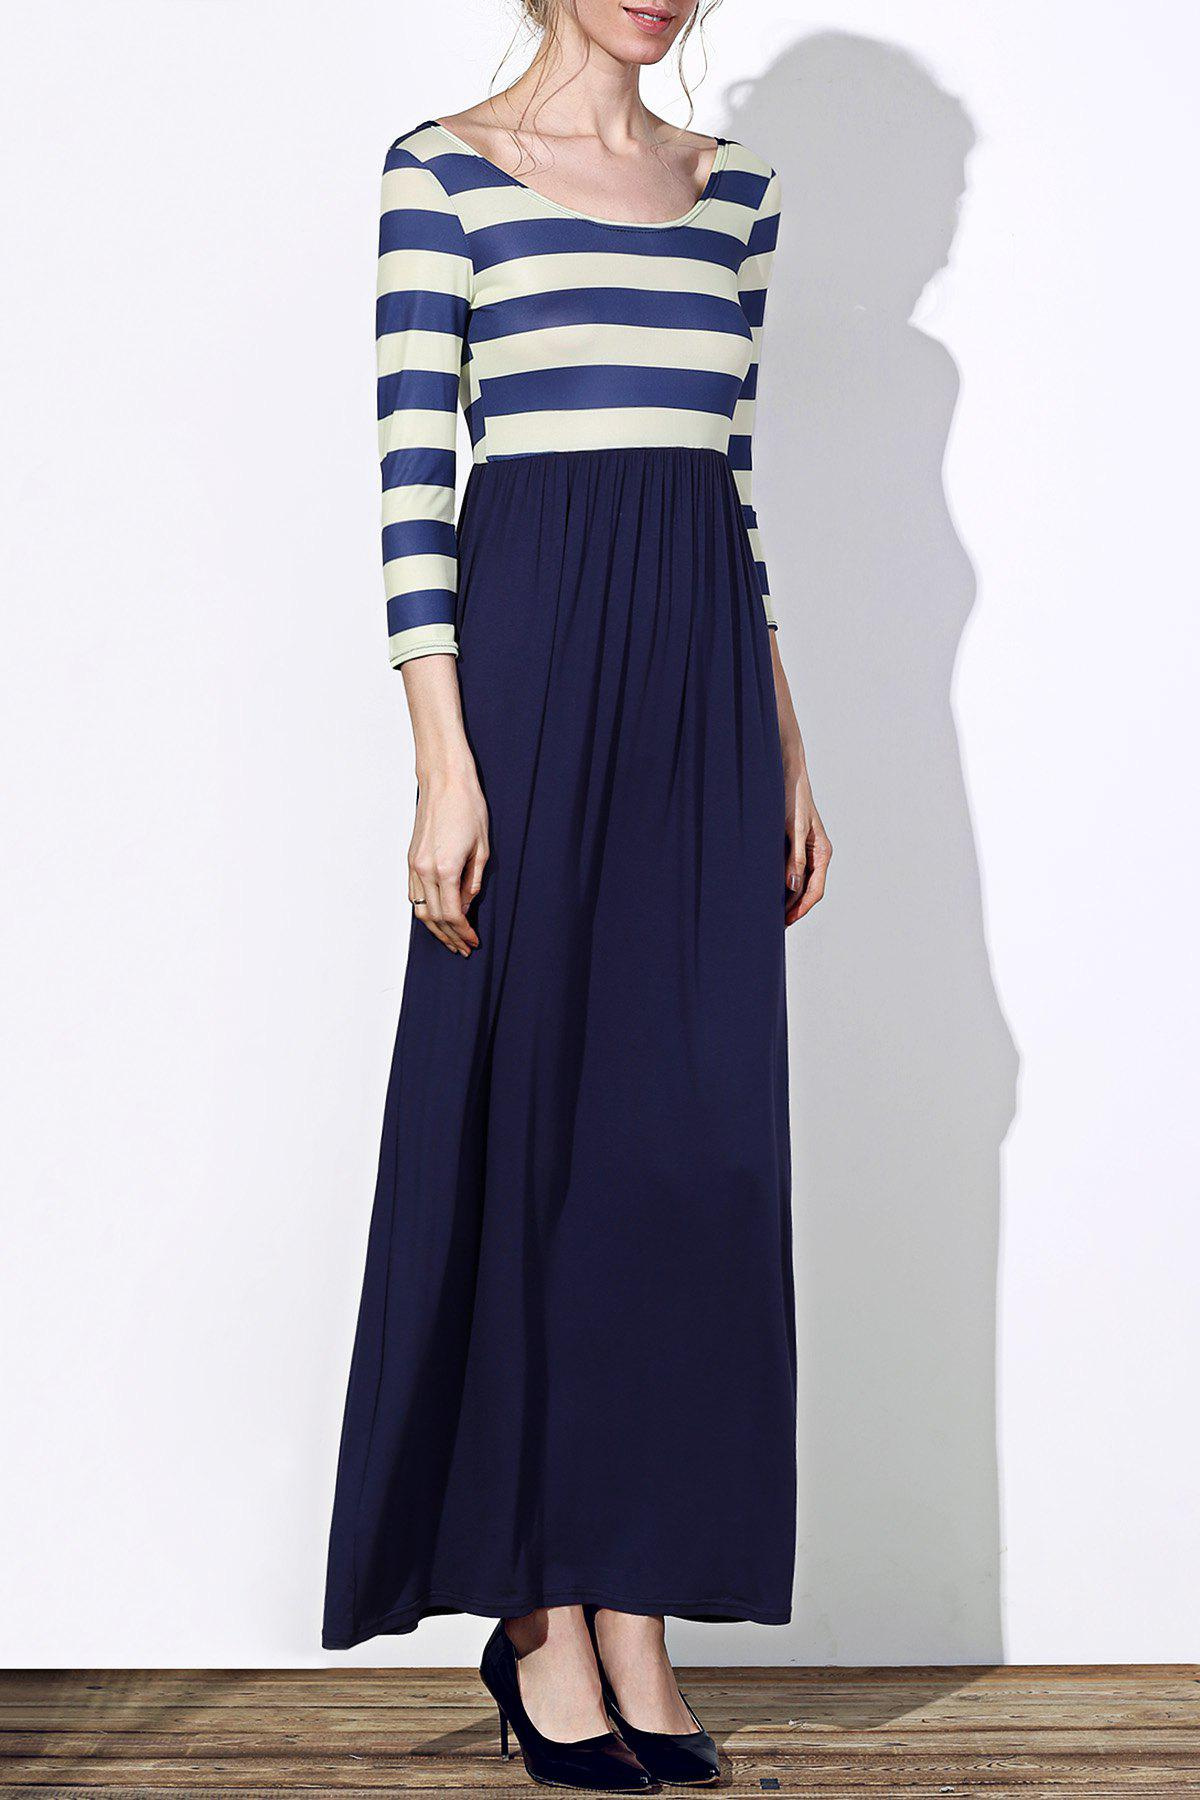 Trendy 3/4 Sleeve Scoop Neck Striped Women's Maxi Dress - DEEP BLUE S